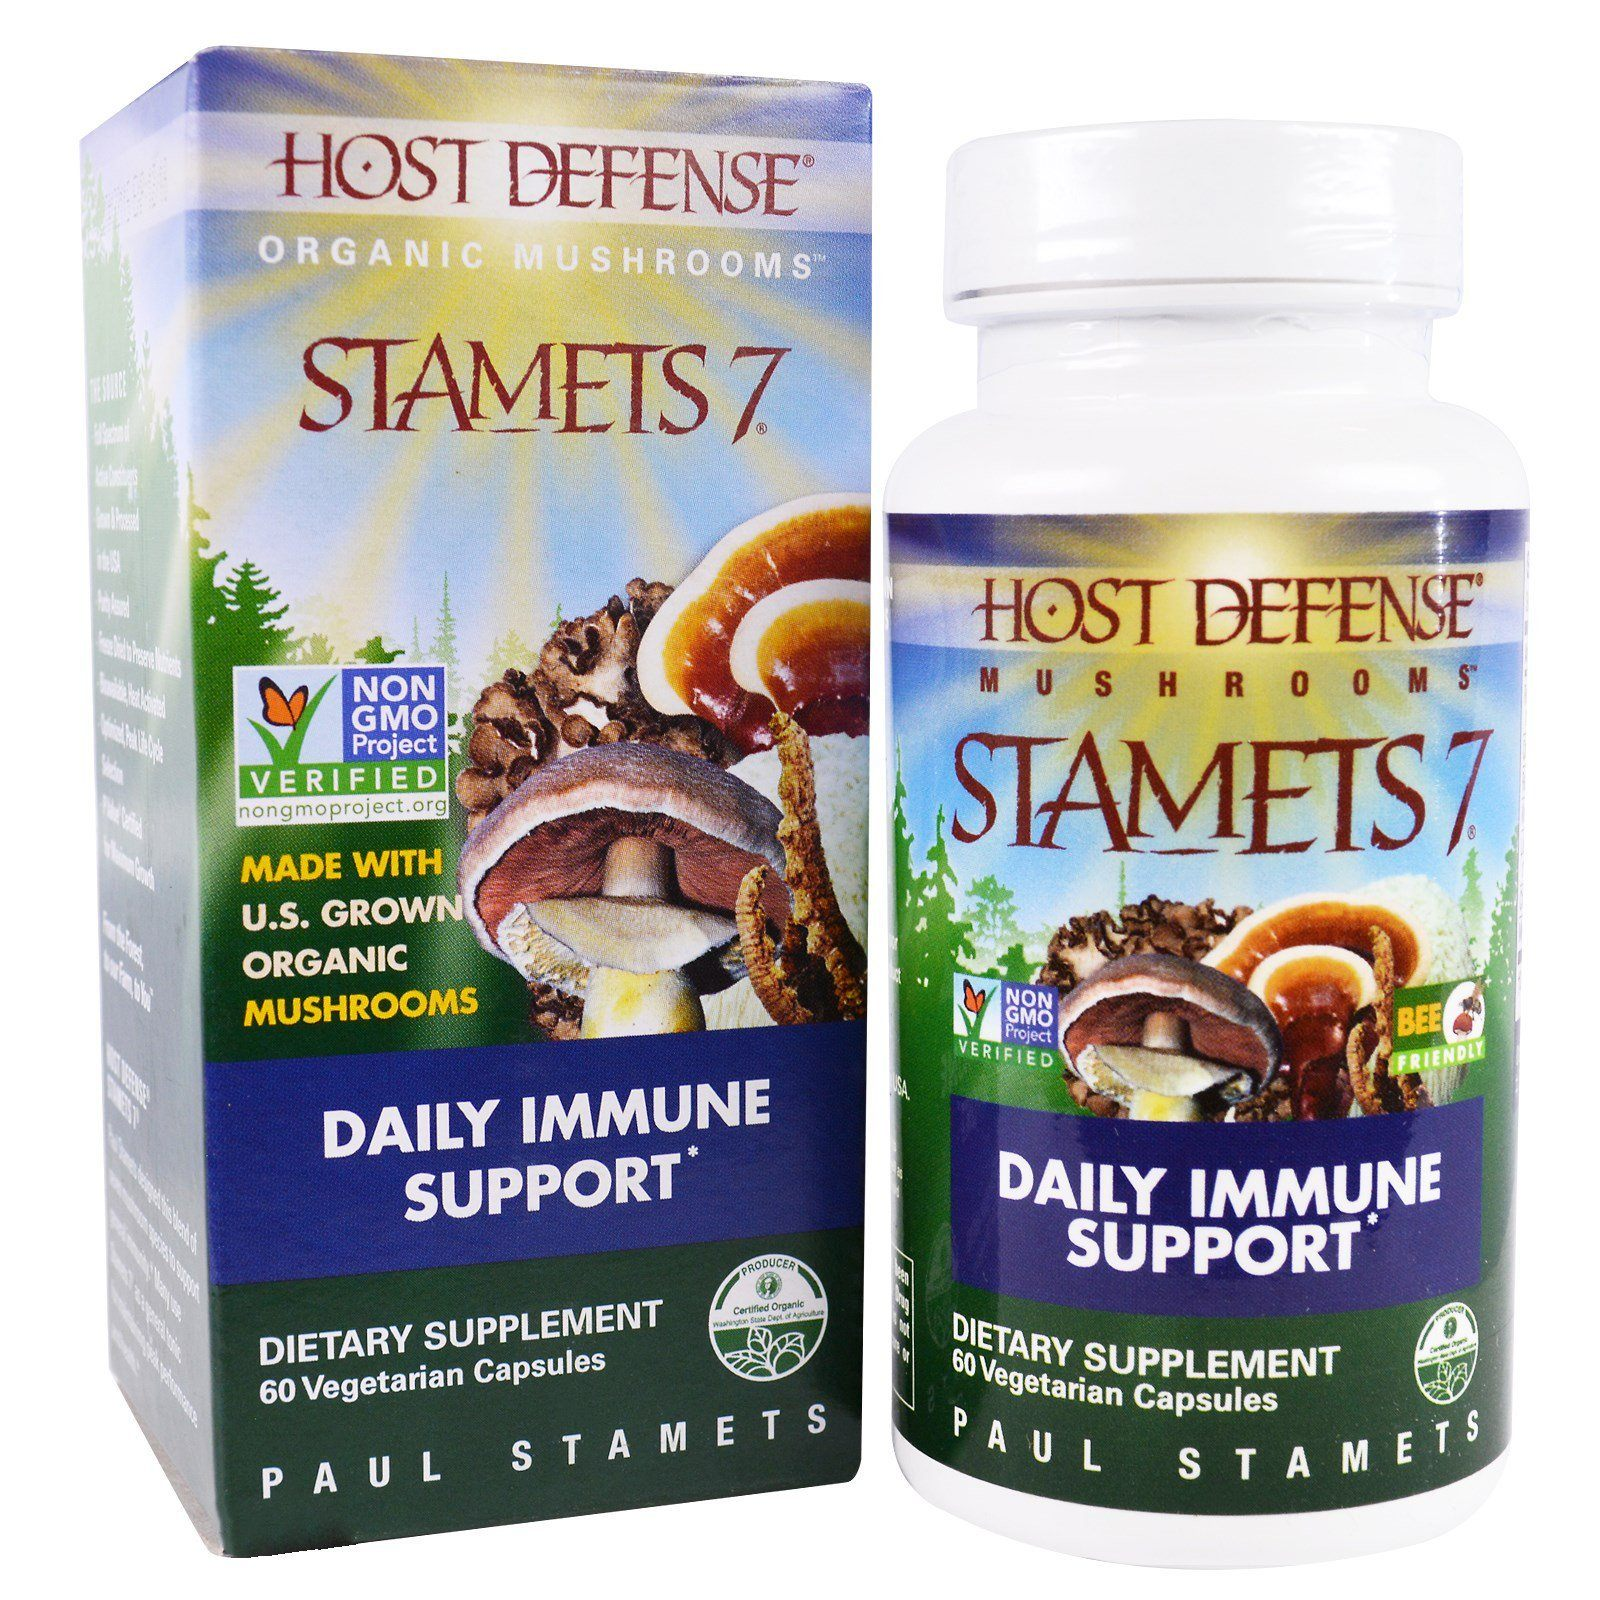 Supplements & Vitamins - Host Defense - Stamets 7, 60 Caps